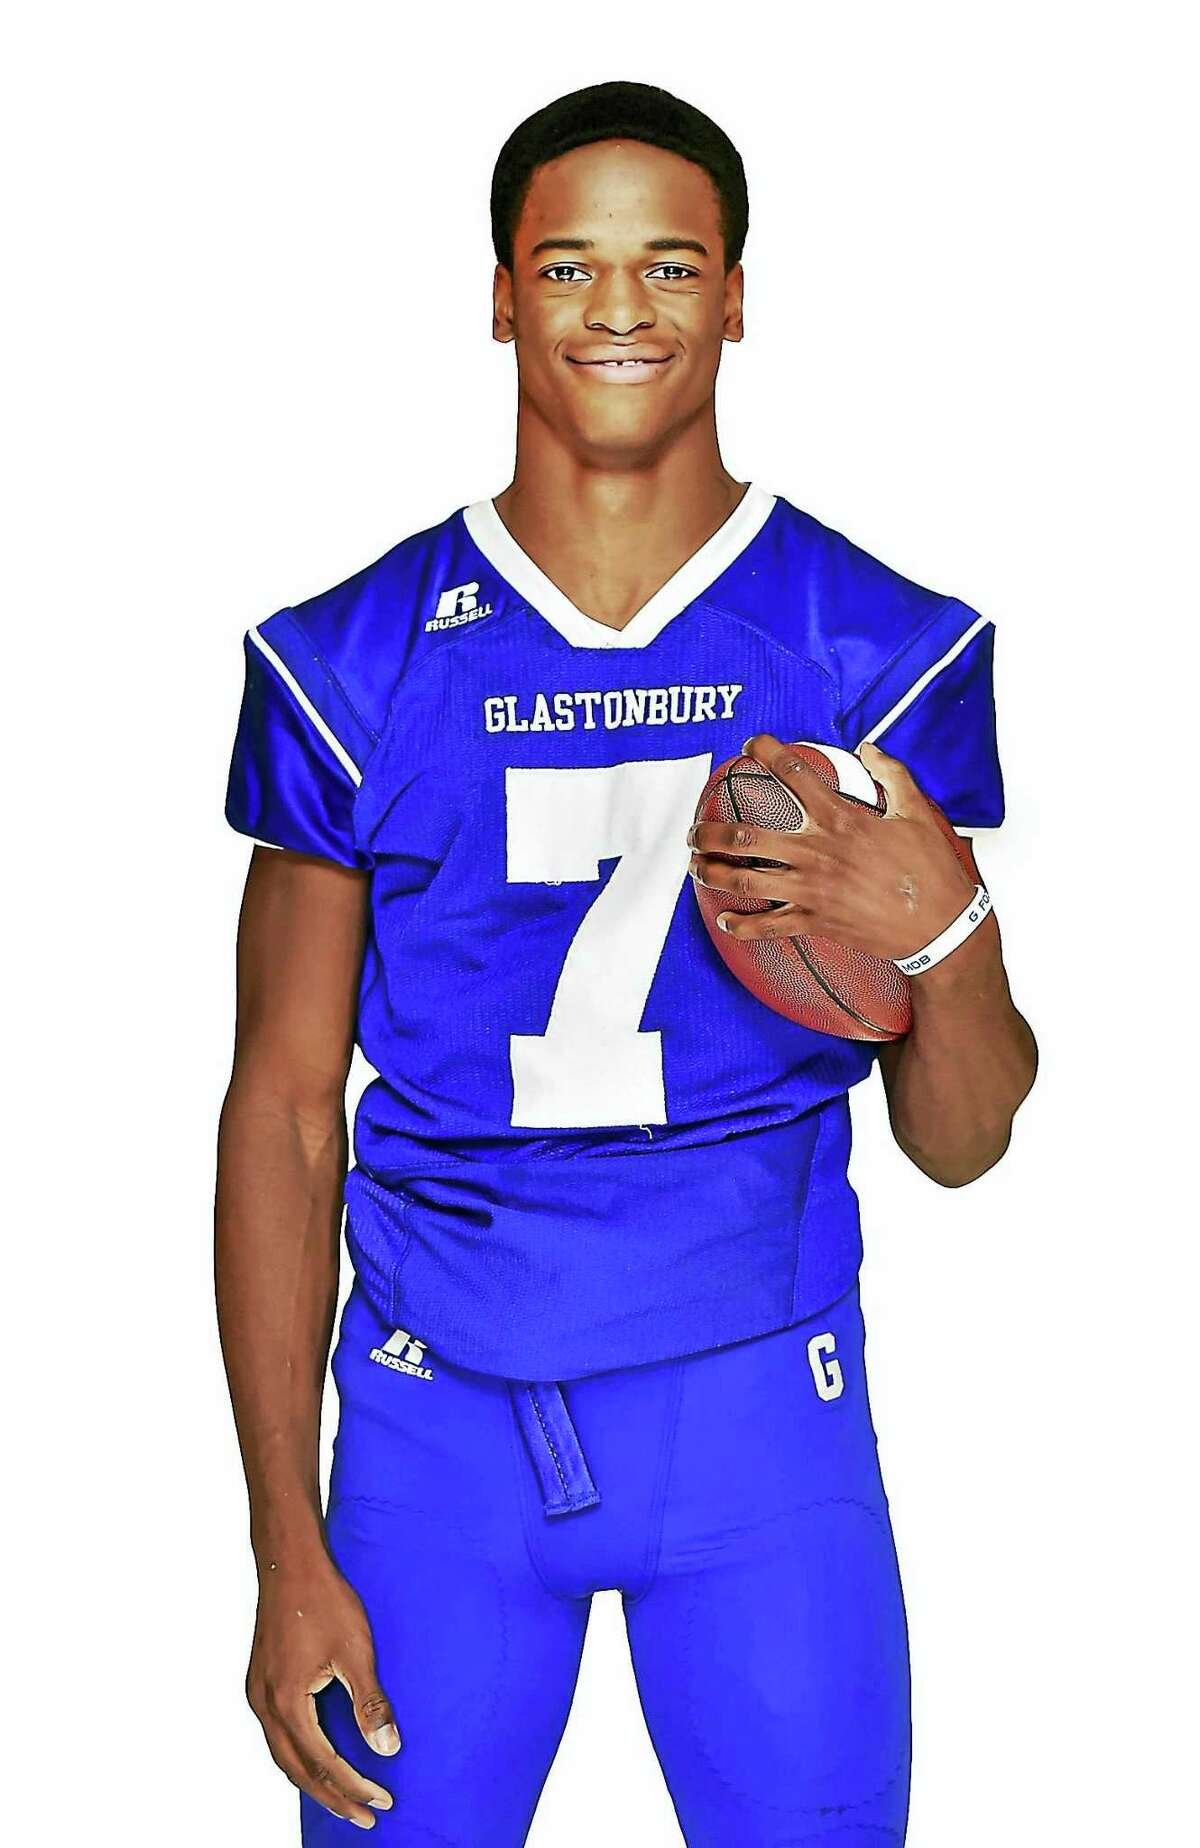 Keyion Dixon of Glastonbury High. Dixon was an All-State receiver in high school.